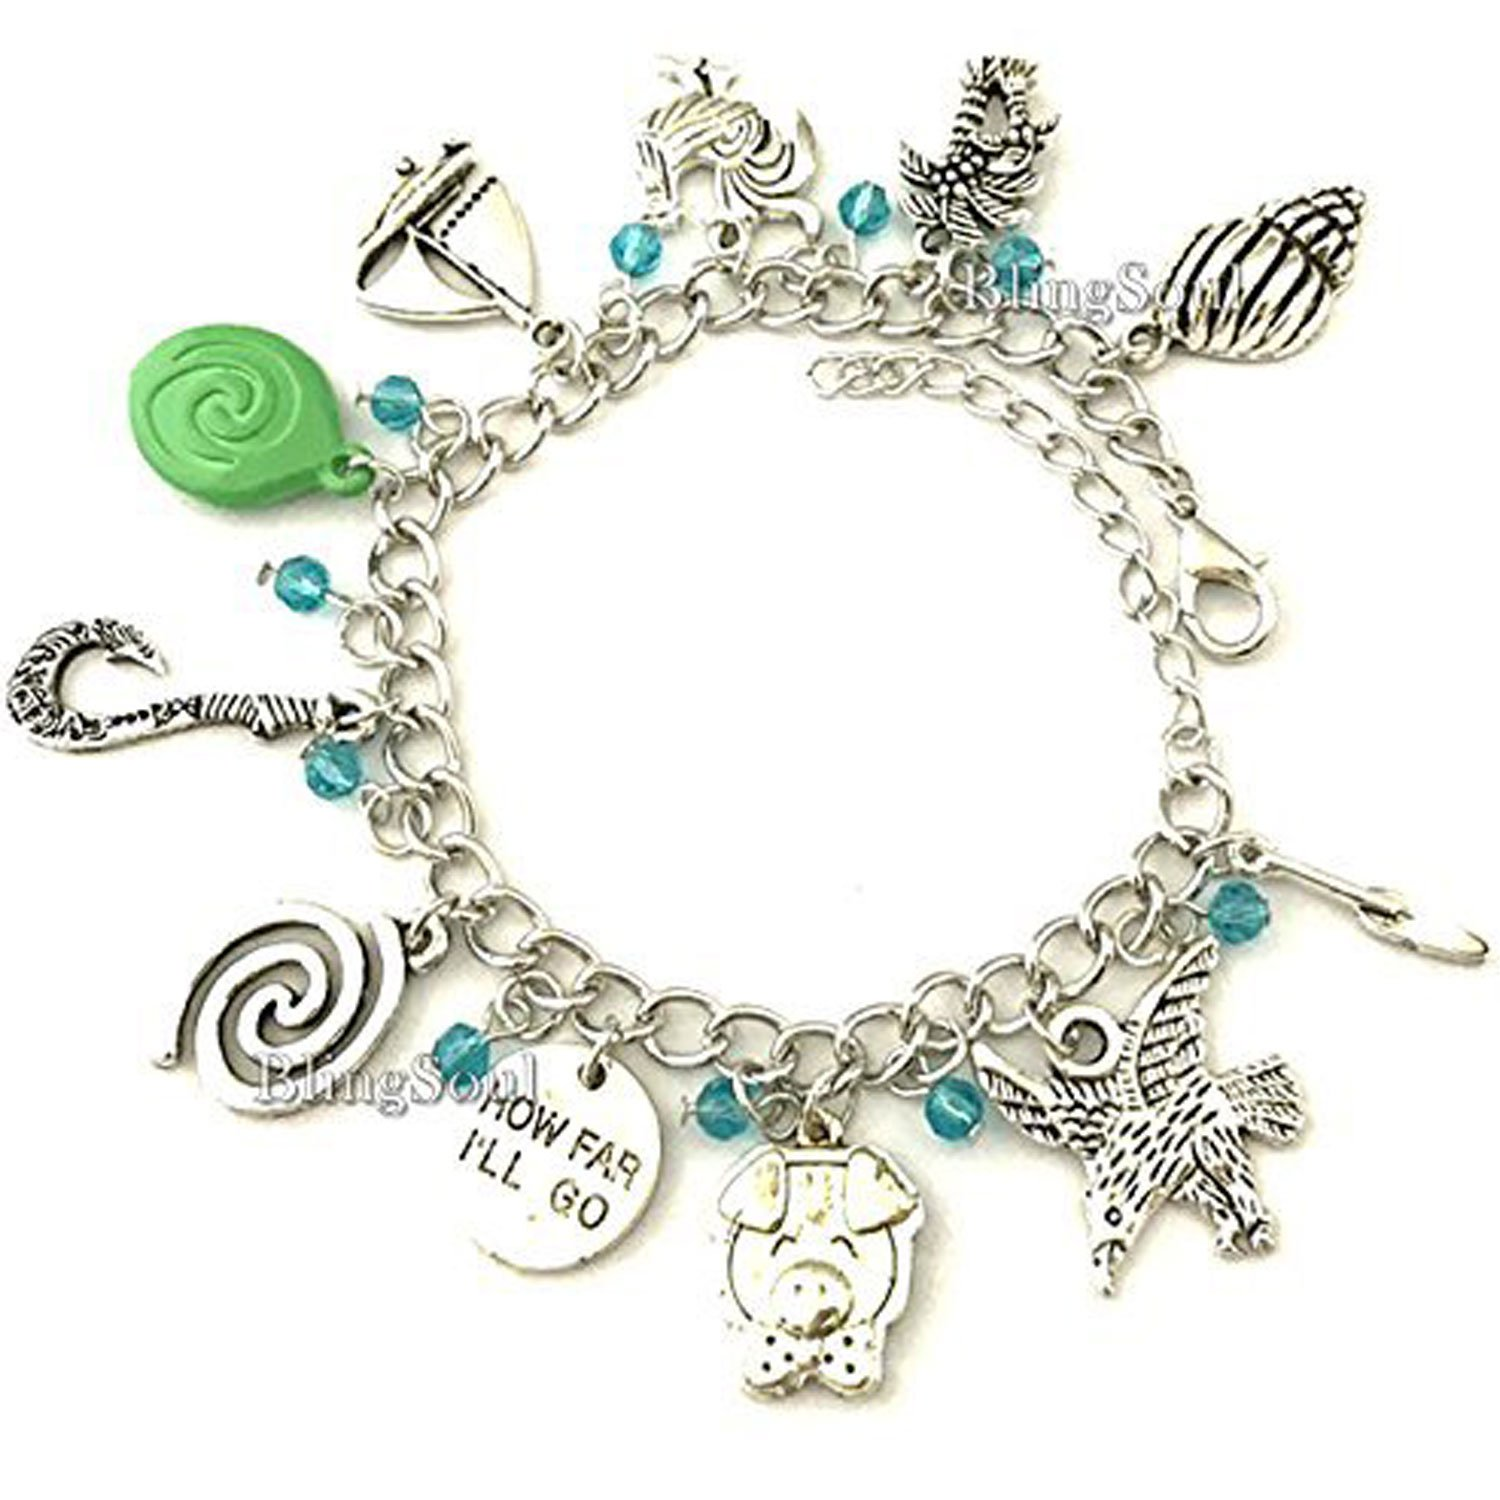 BlingSoul Maui Moana Charm Bracelet - Maui Hook Jewelry Moana Gift Merchandise for Women by BlingSoul (Image #4)